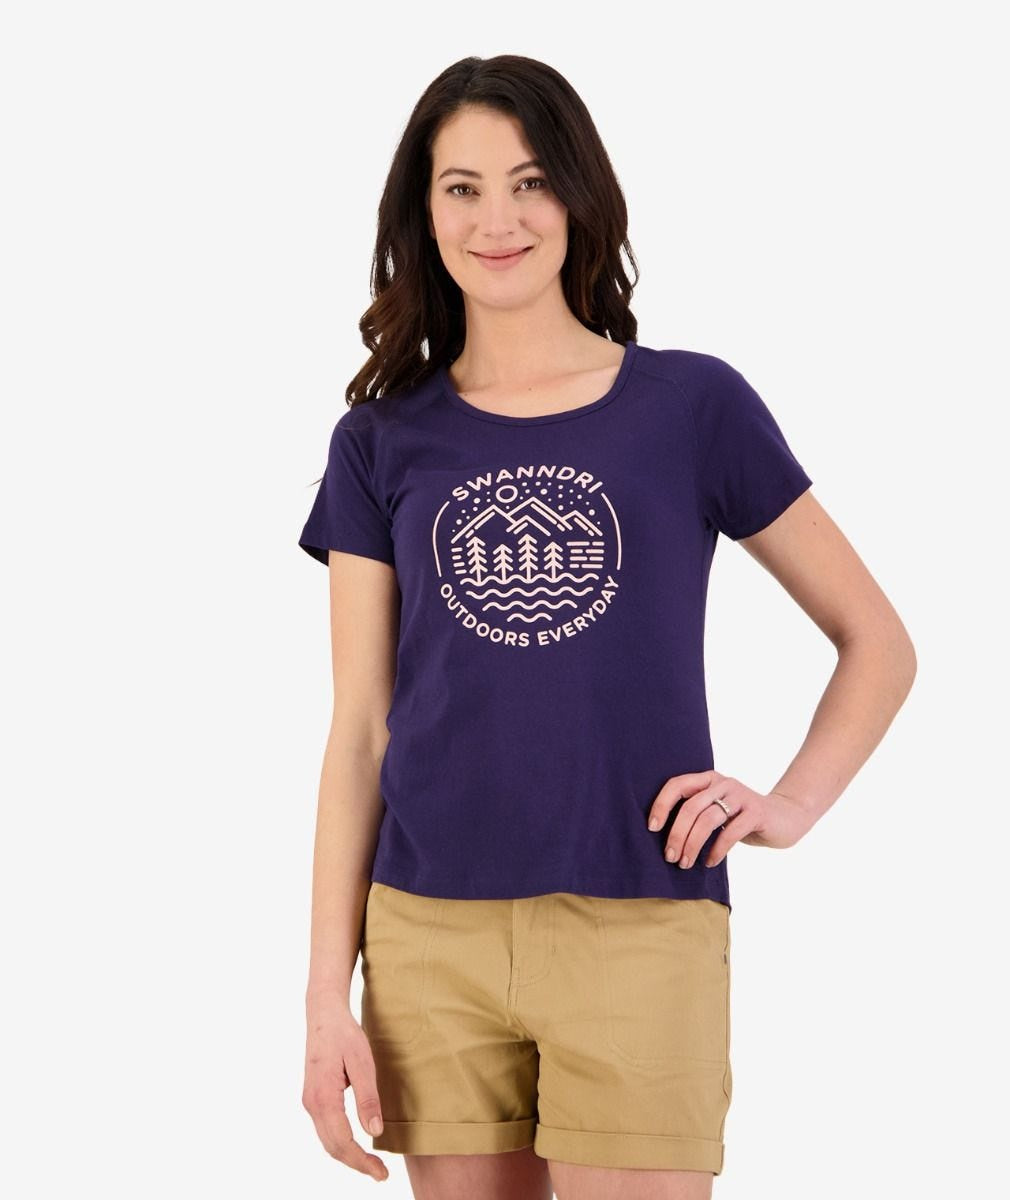 Womens OED Print Tee (Navy/Peach)